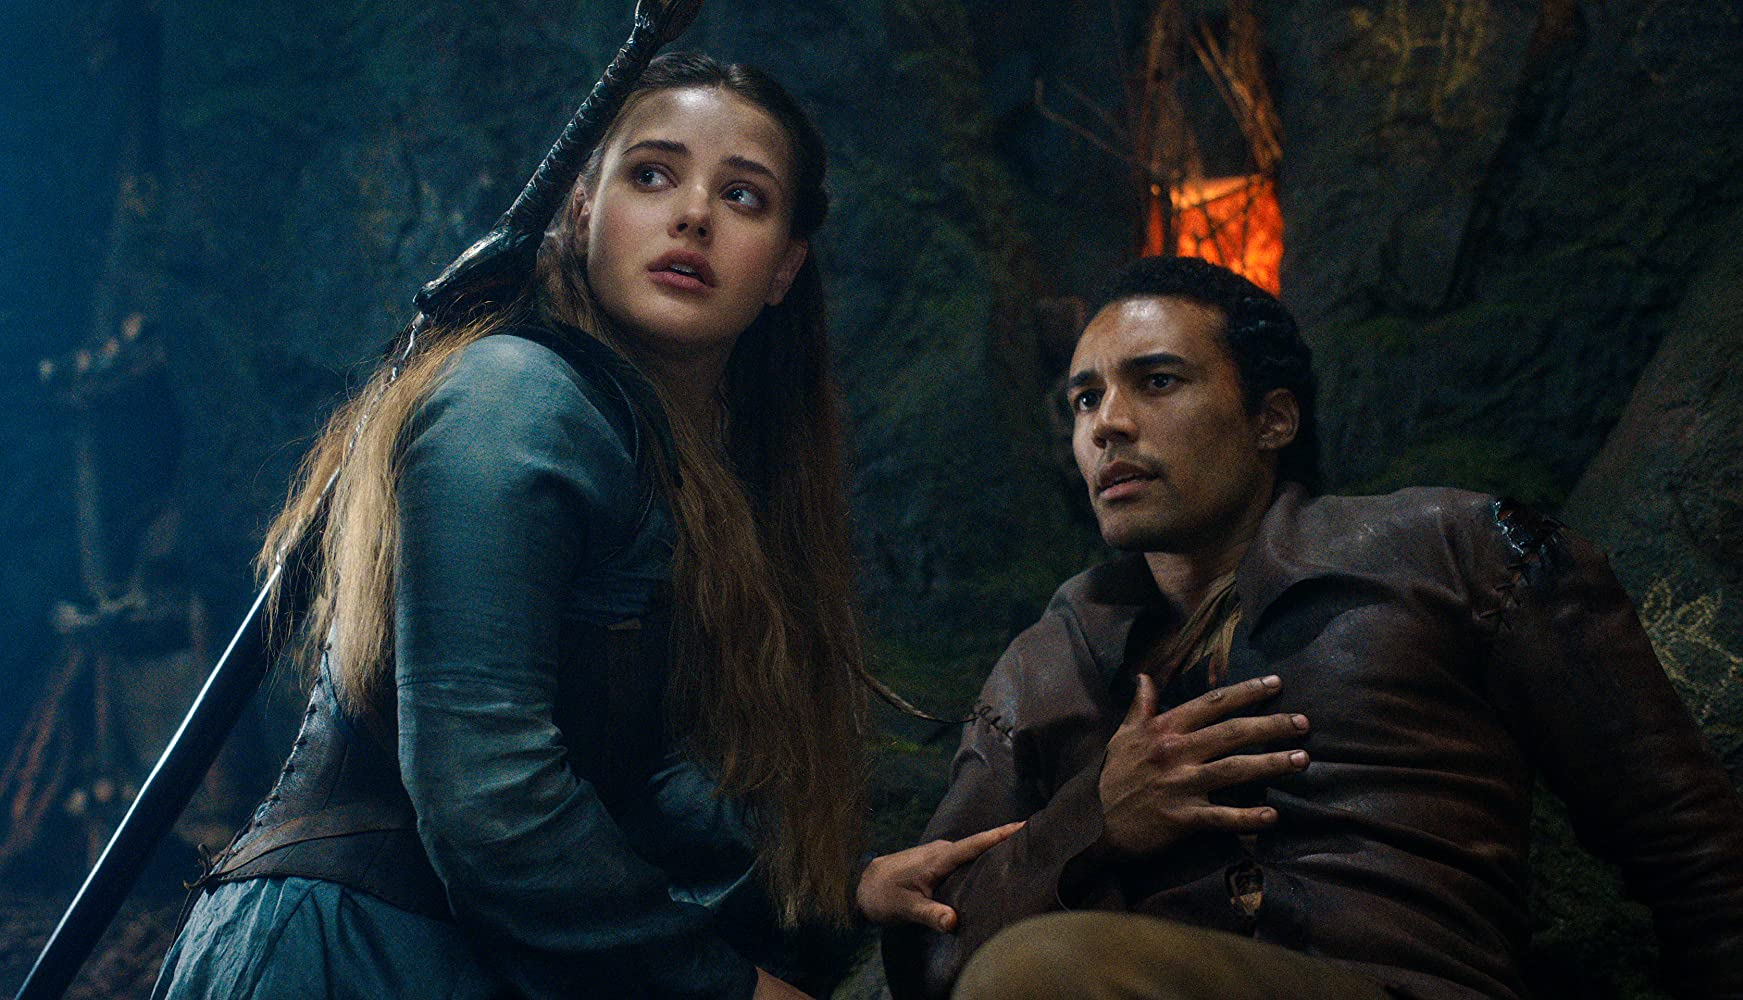 Devon Terrell and Katherine Langford in Cursed (2020)